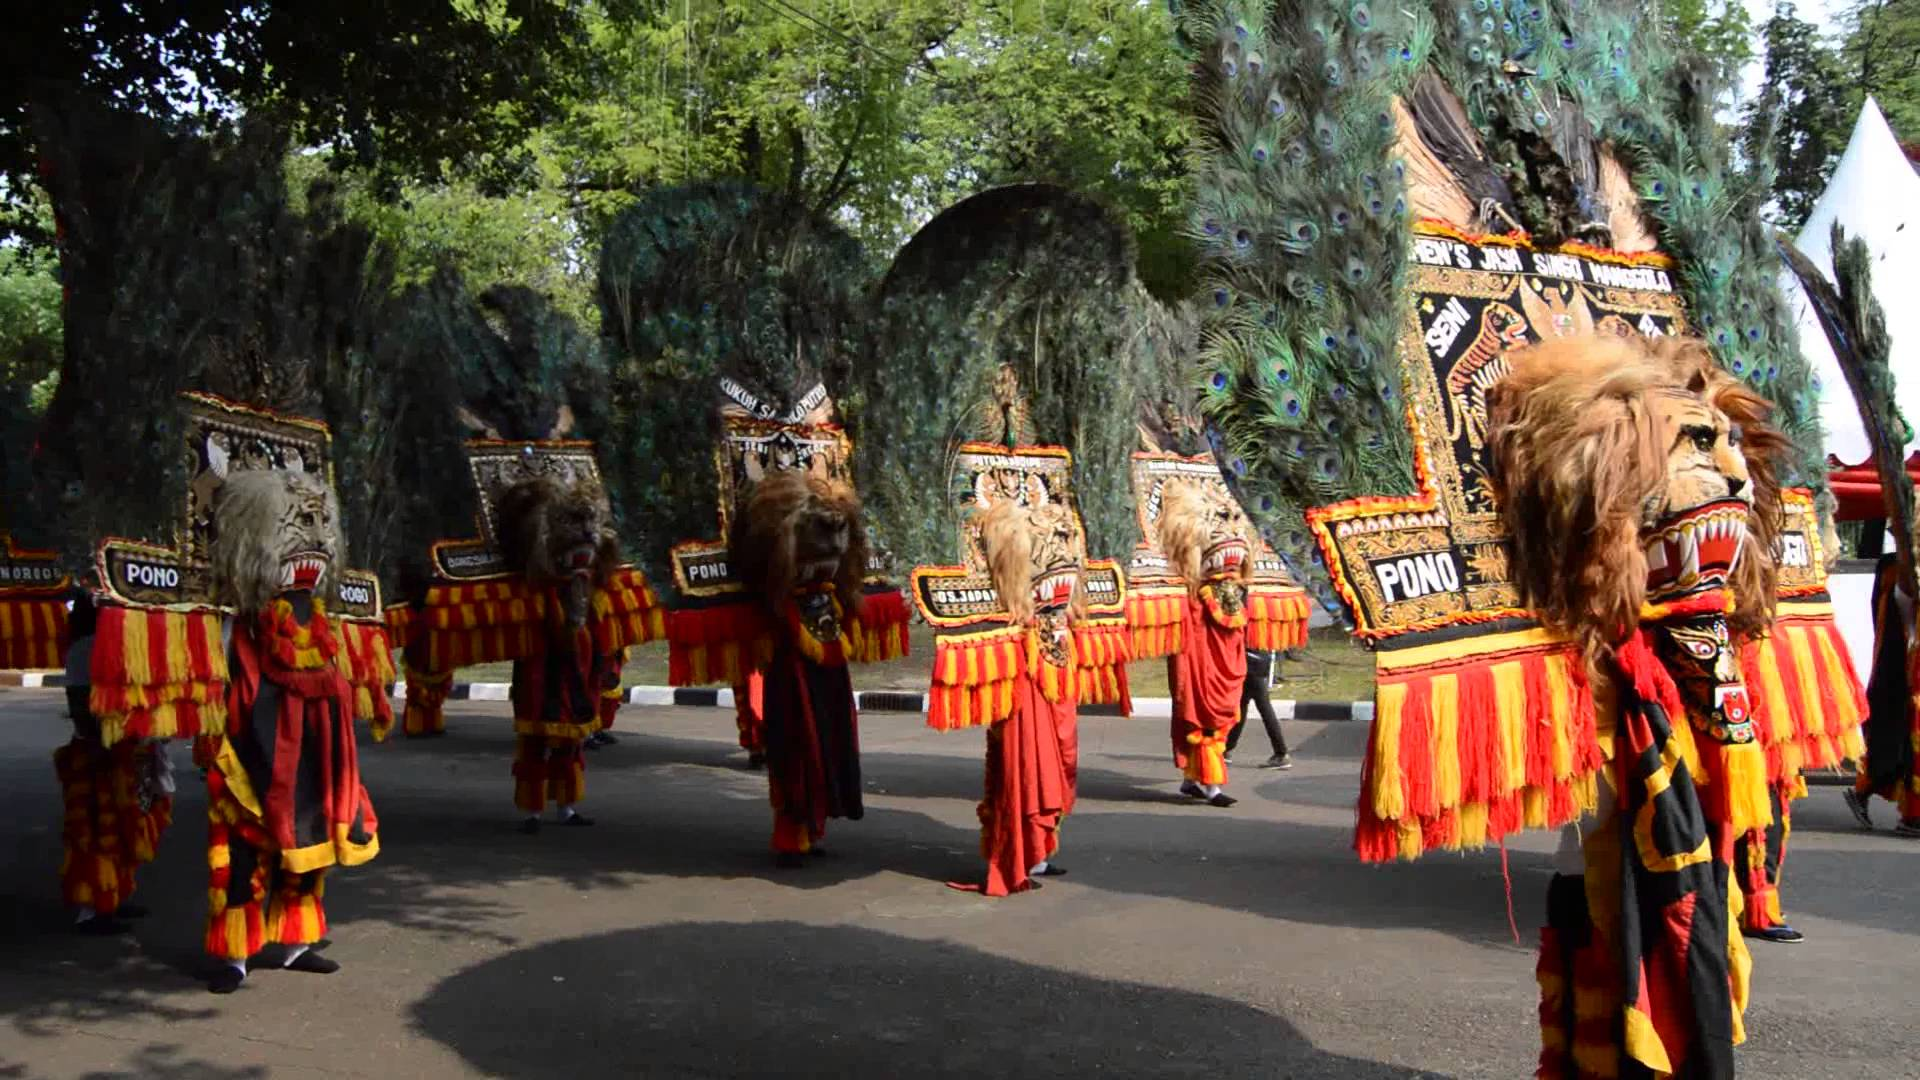 Reog Dance is one of the regional cultures in Indonesia